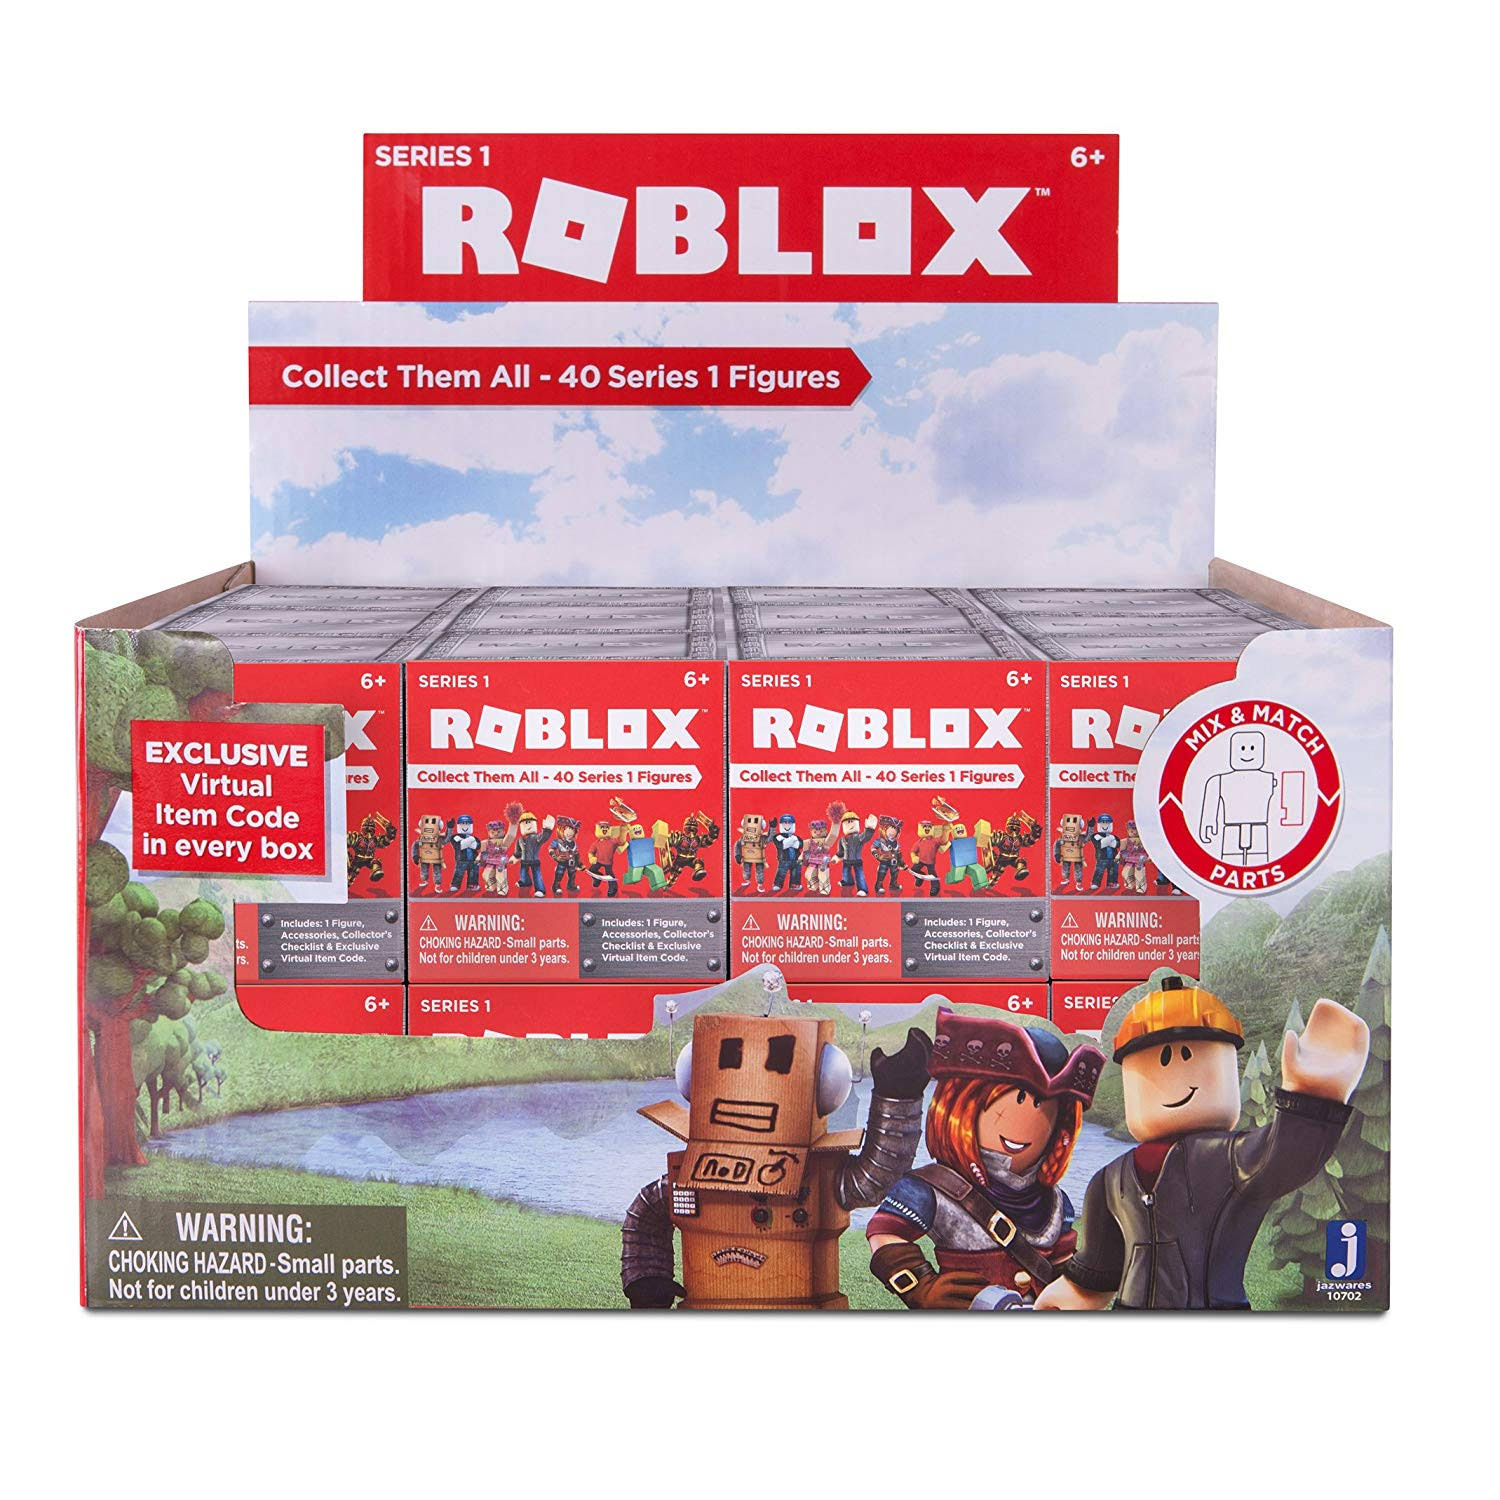 Roblox Series 1 Action Figure Mystery Box